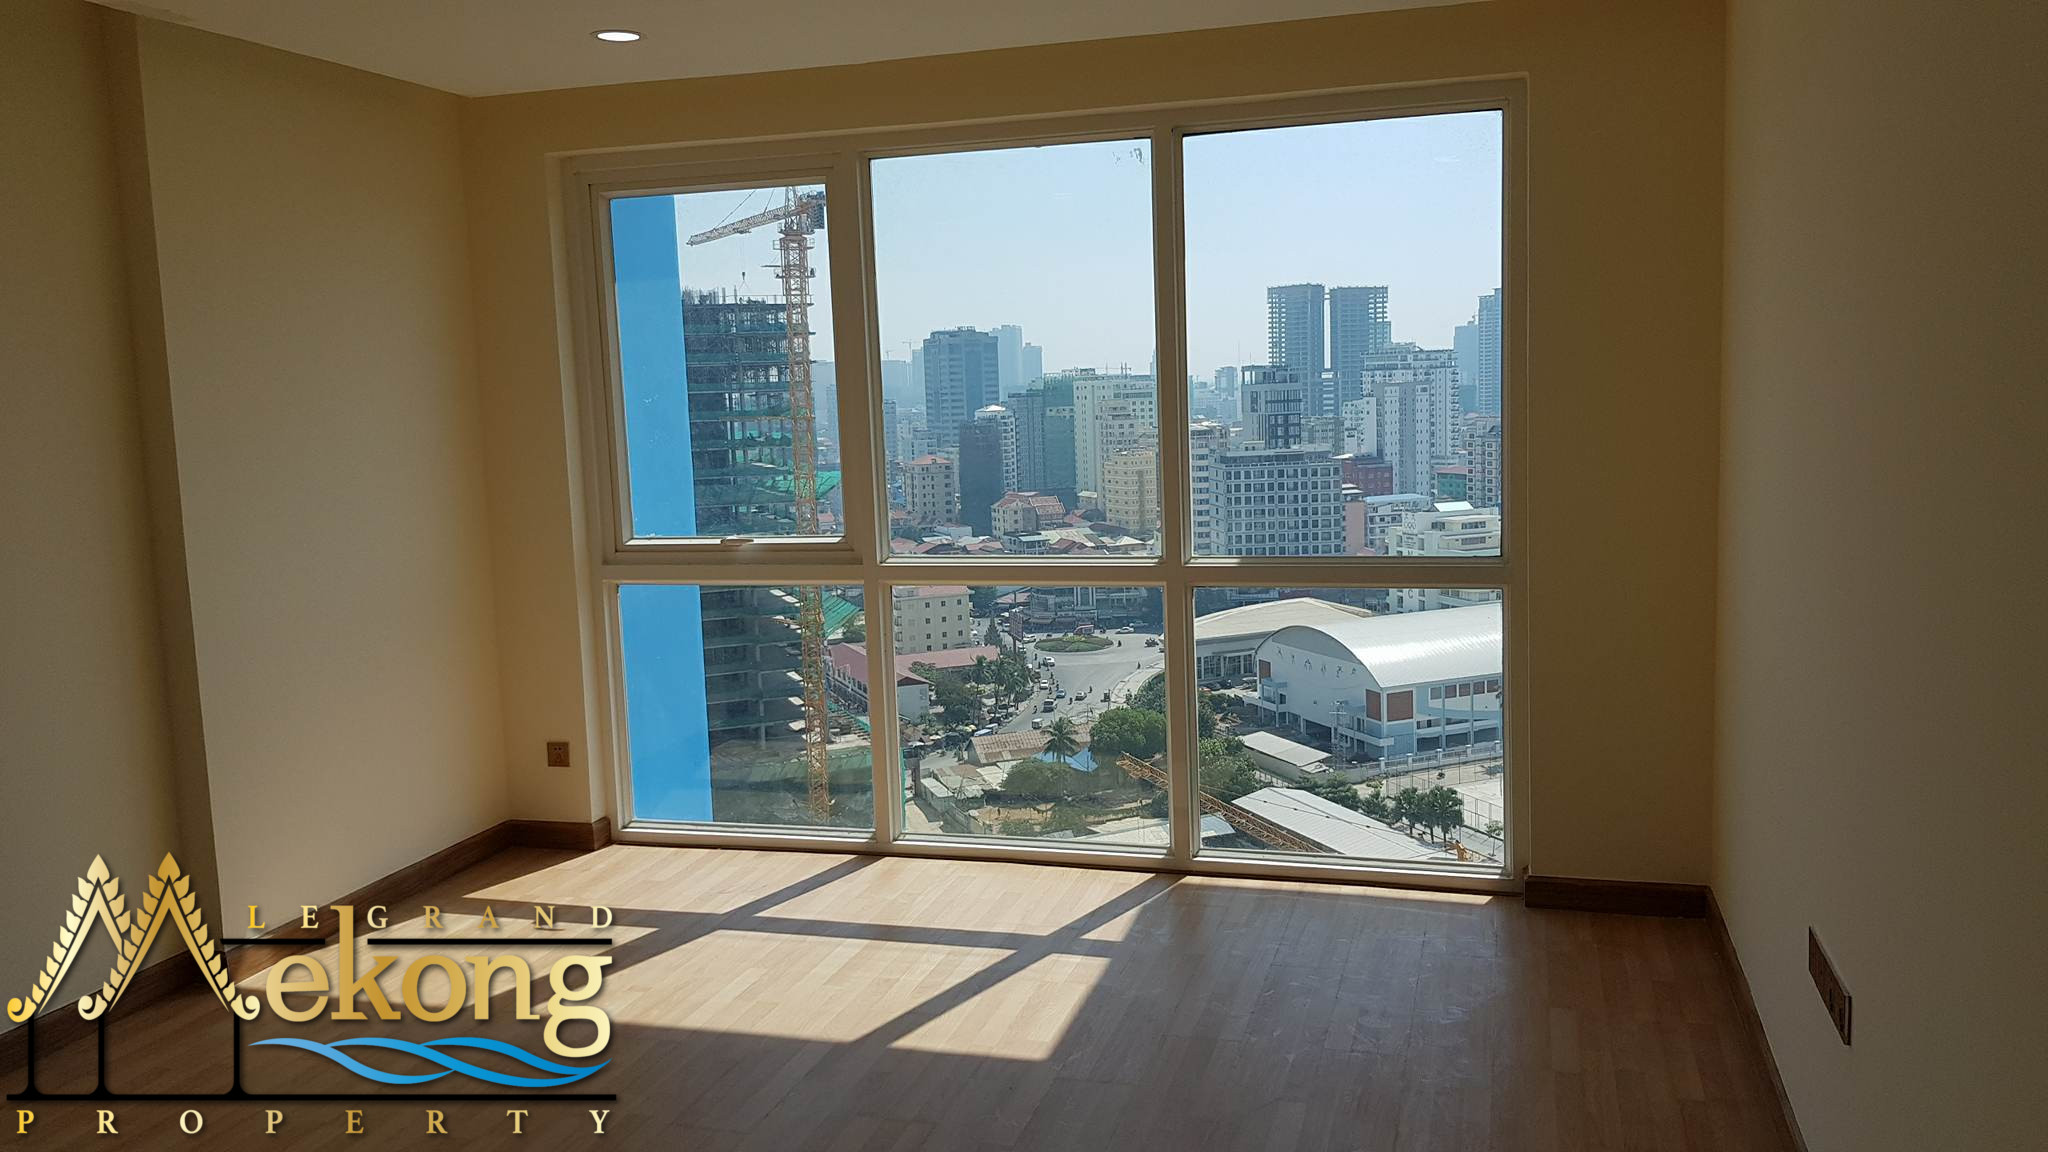 Brand new condominium 2 Bedroom fro sale near Olympic | LGM305